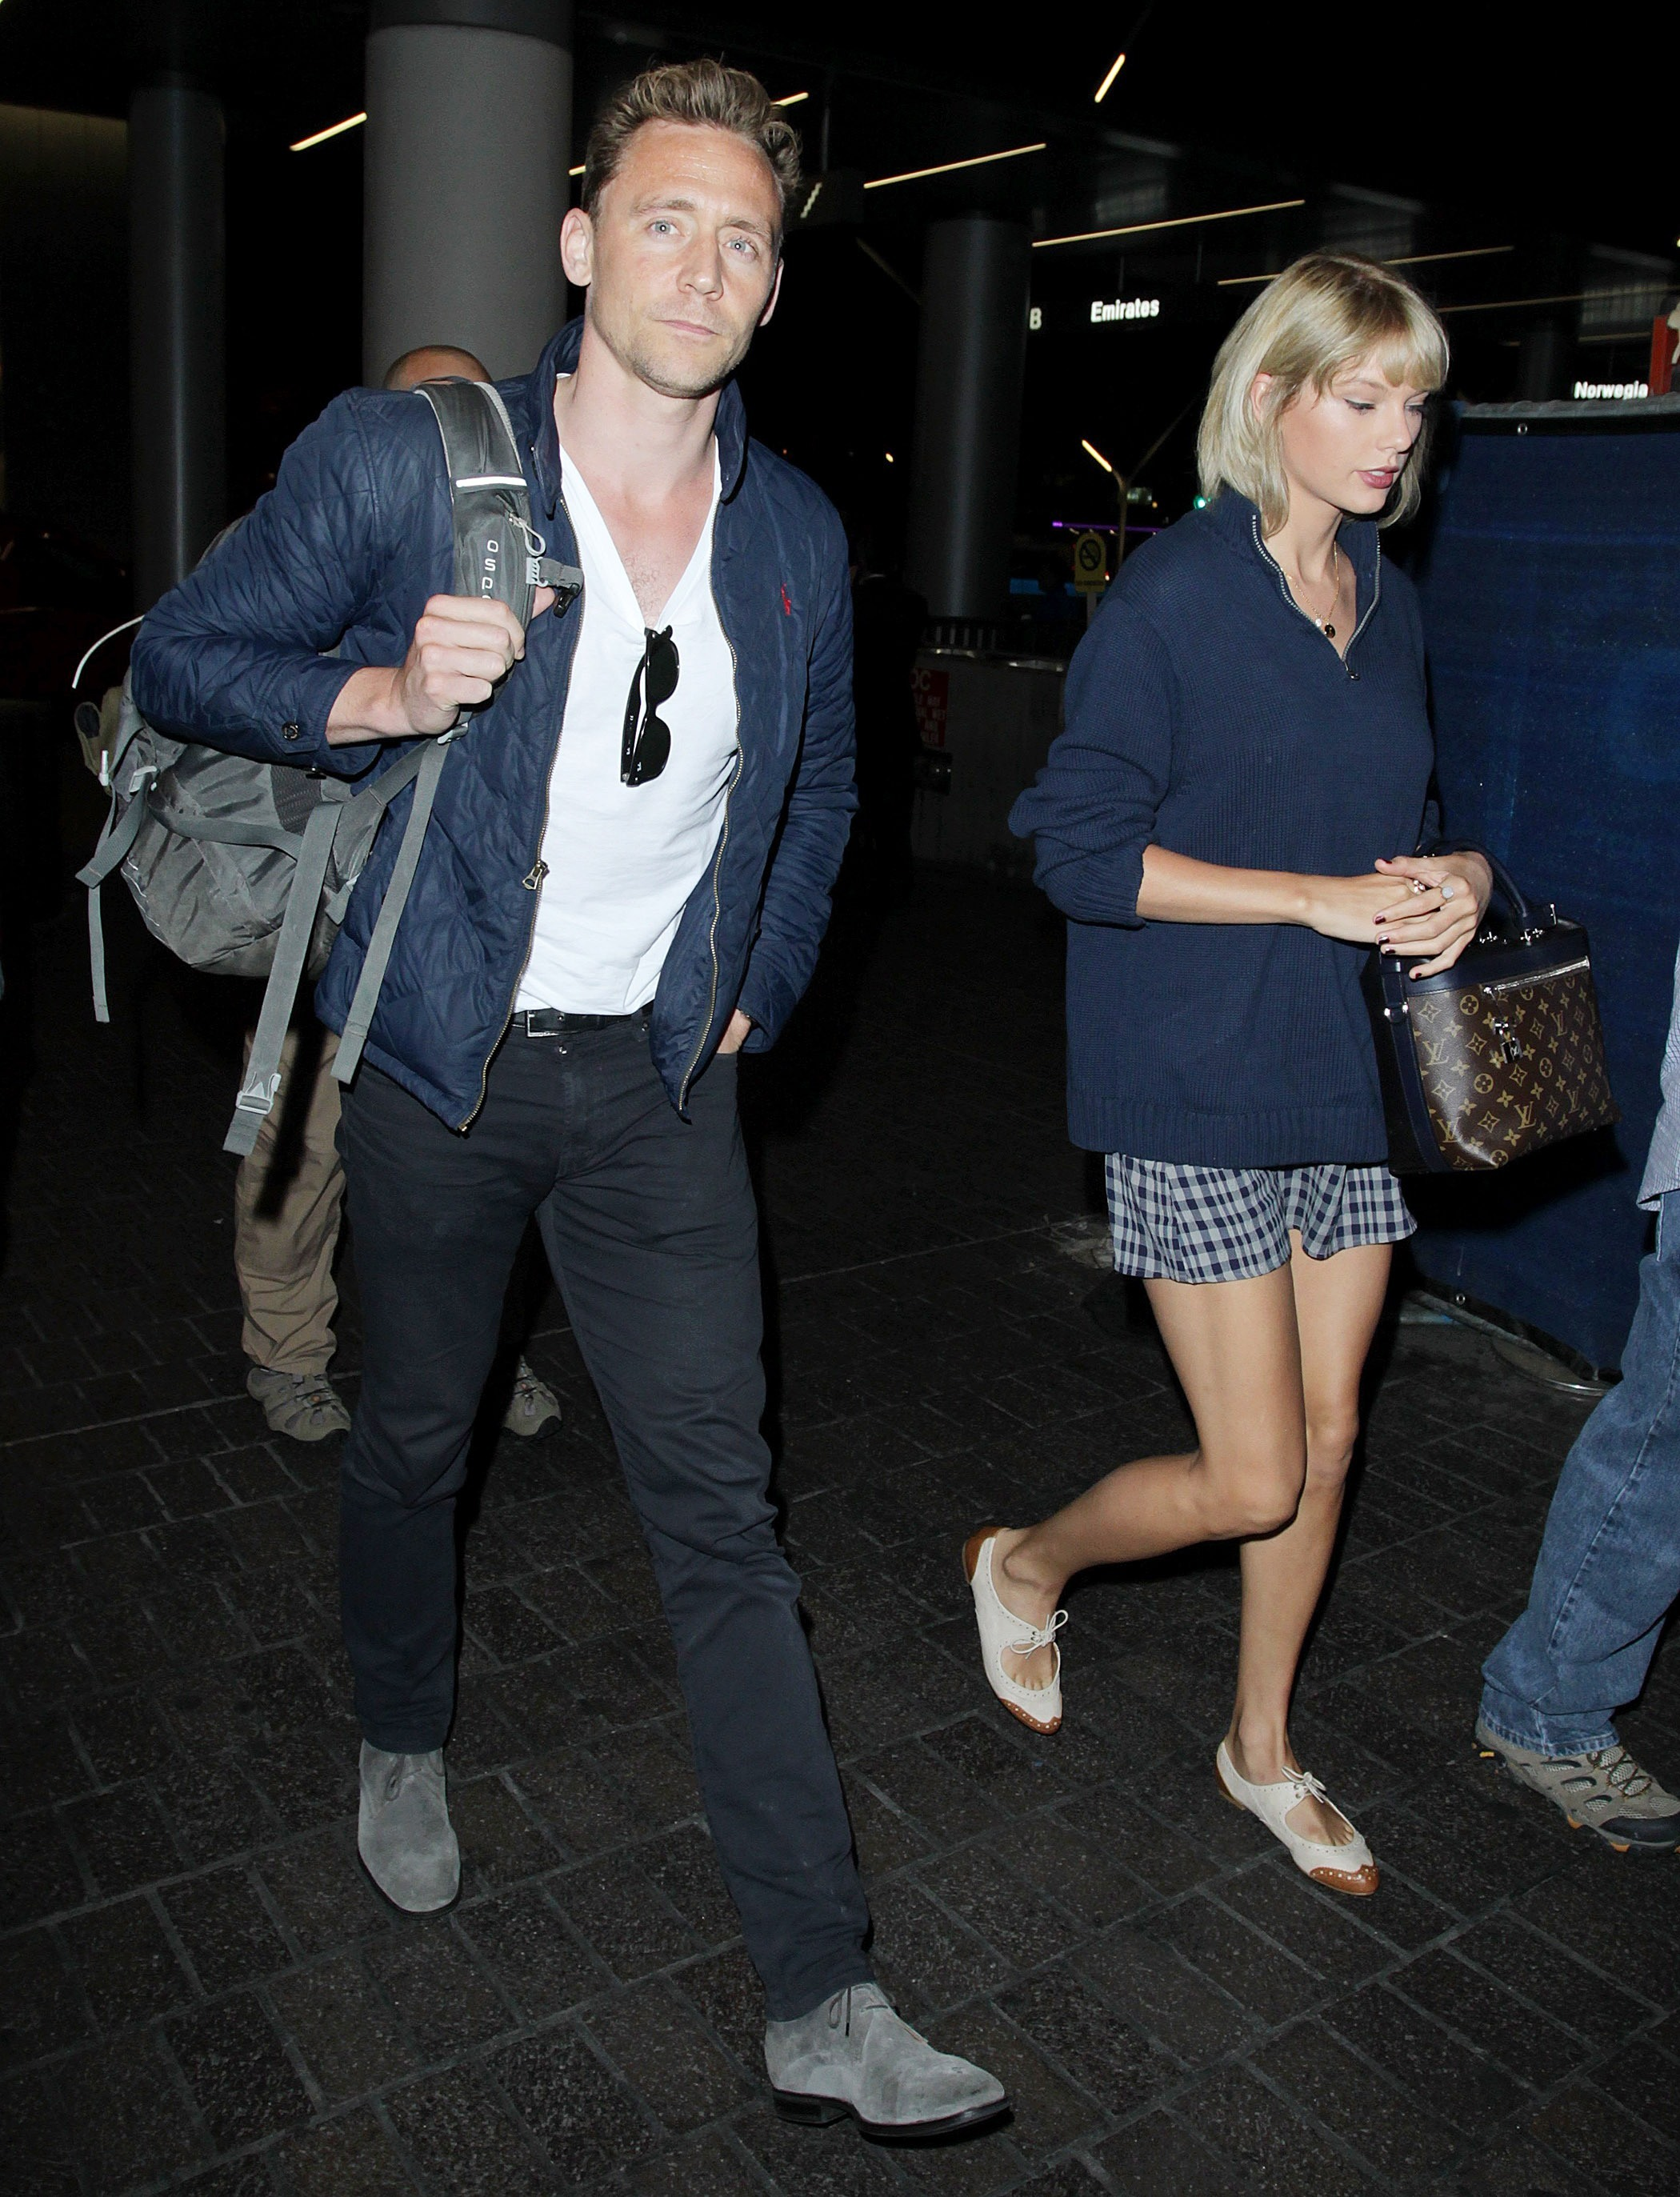 Picture Shows: Tom Hiddleston, Taylor Swift July 06, 2016 Tom Hiddleston and Taylor Swift arrive at LAX Airport from Rhode Island in Los Angeles, California. The couple dressed alike in navy blue hues. Non Exclusive UK RIGHTS ONLY (News International & Trinity Mirror Titles Only For Newspaper / No Associated Press Or Express Group EVER For Papers & Web) Pictures by : FameFlynet UK © 2016 Tel : +44 (0)20 3551 5049 Email : info@fameflynet.uk.com